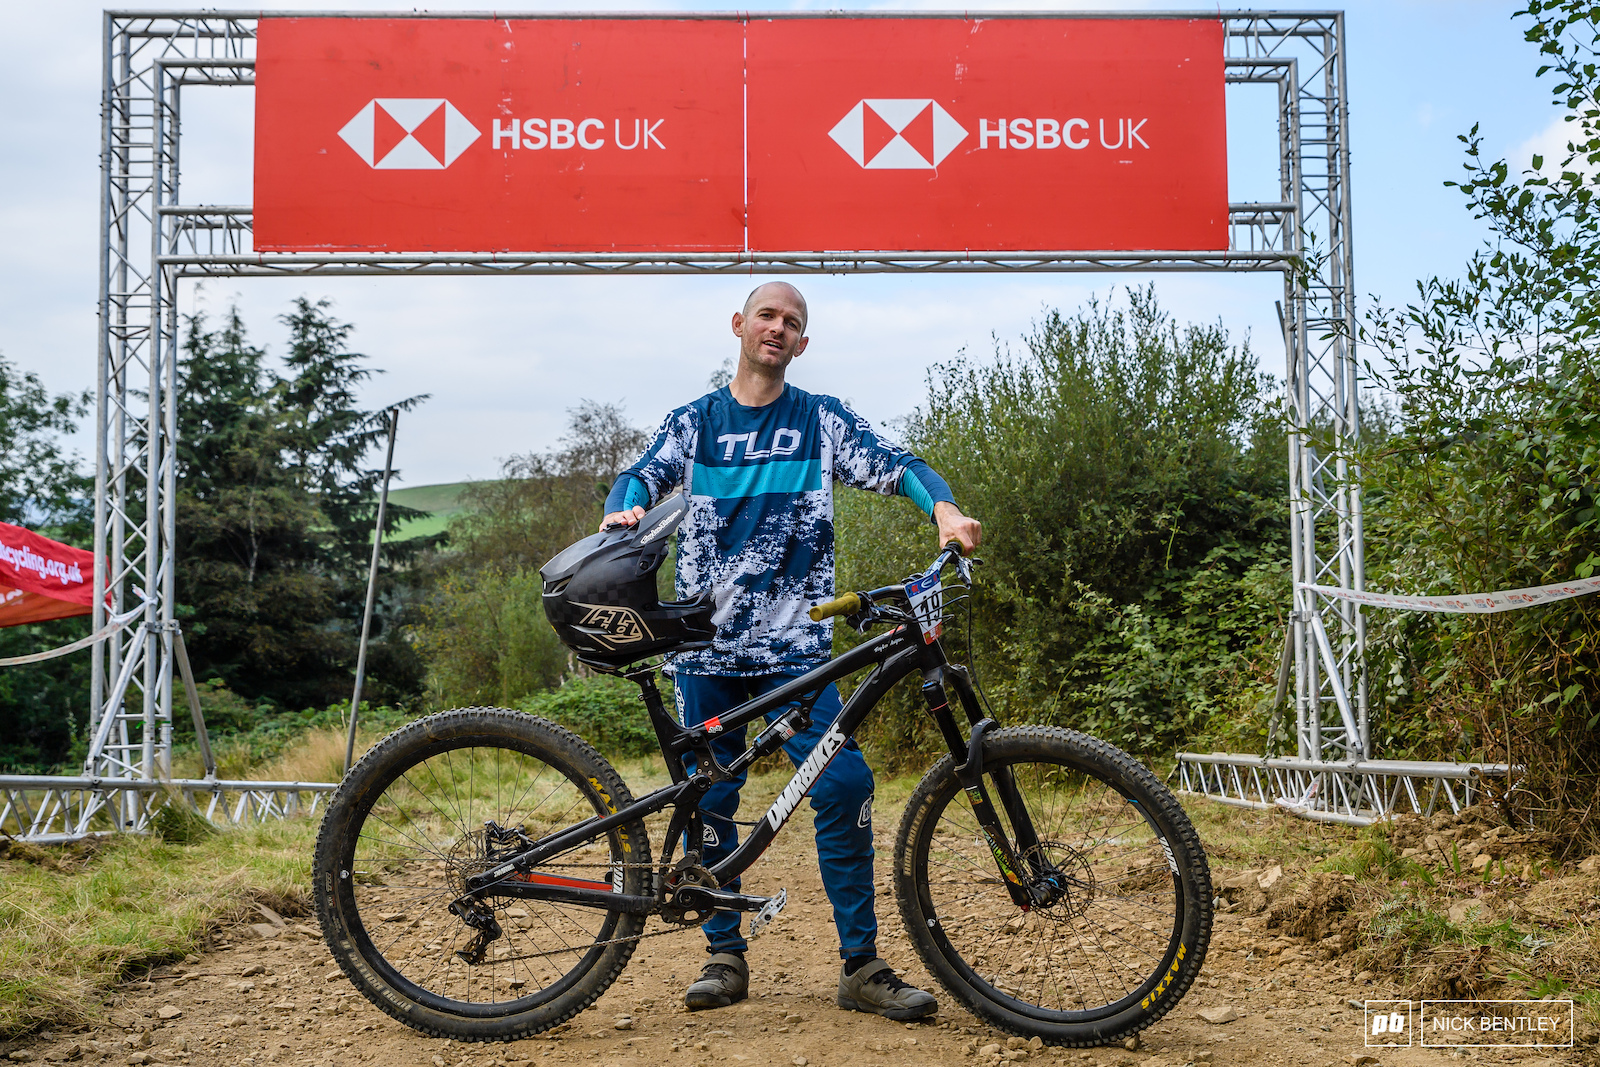 The return of Duncan Ferris. Back to back wins on the Afan track for Duncan just a small matter of 2 years and a pandemic in-between. Duncan was out racing and winning on an enduro trail bike proof that you really can race 4X on any bike.